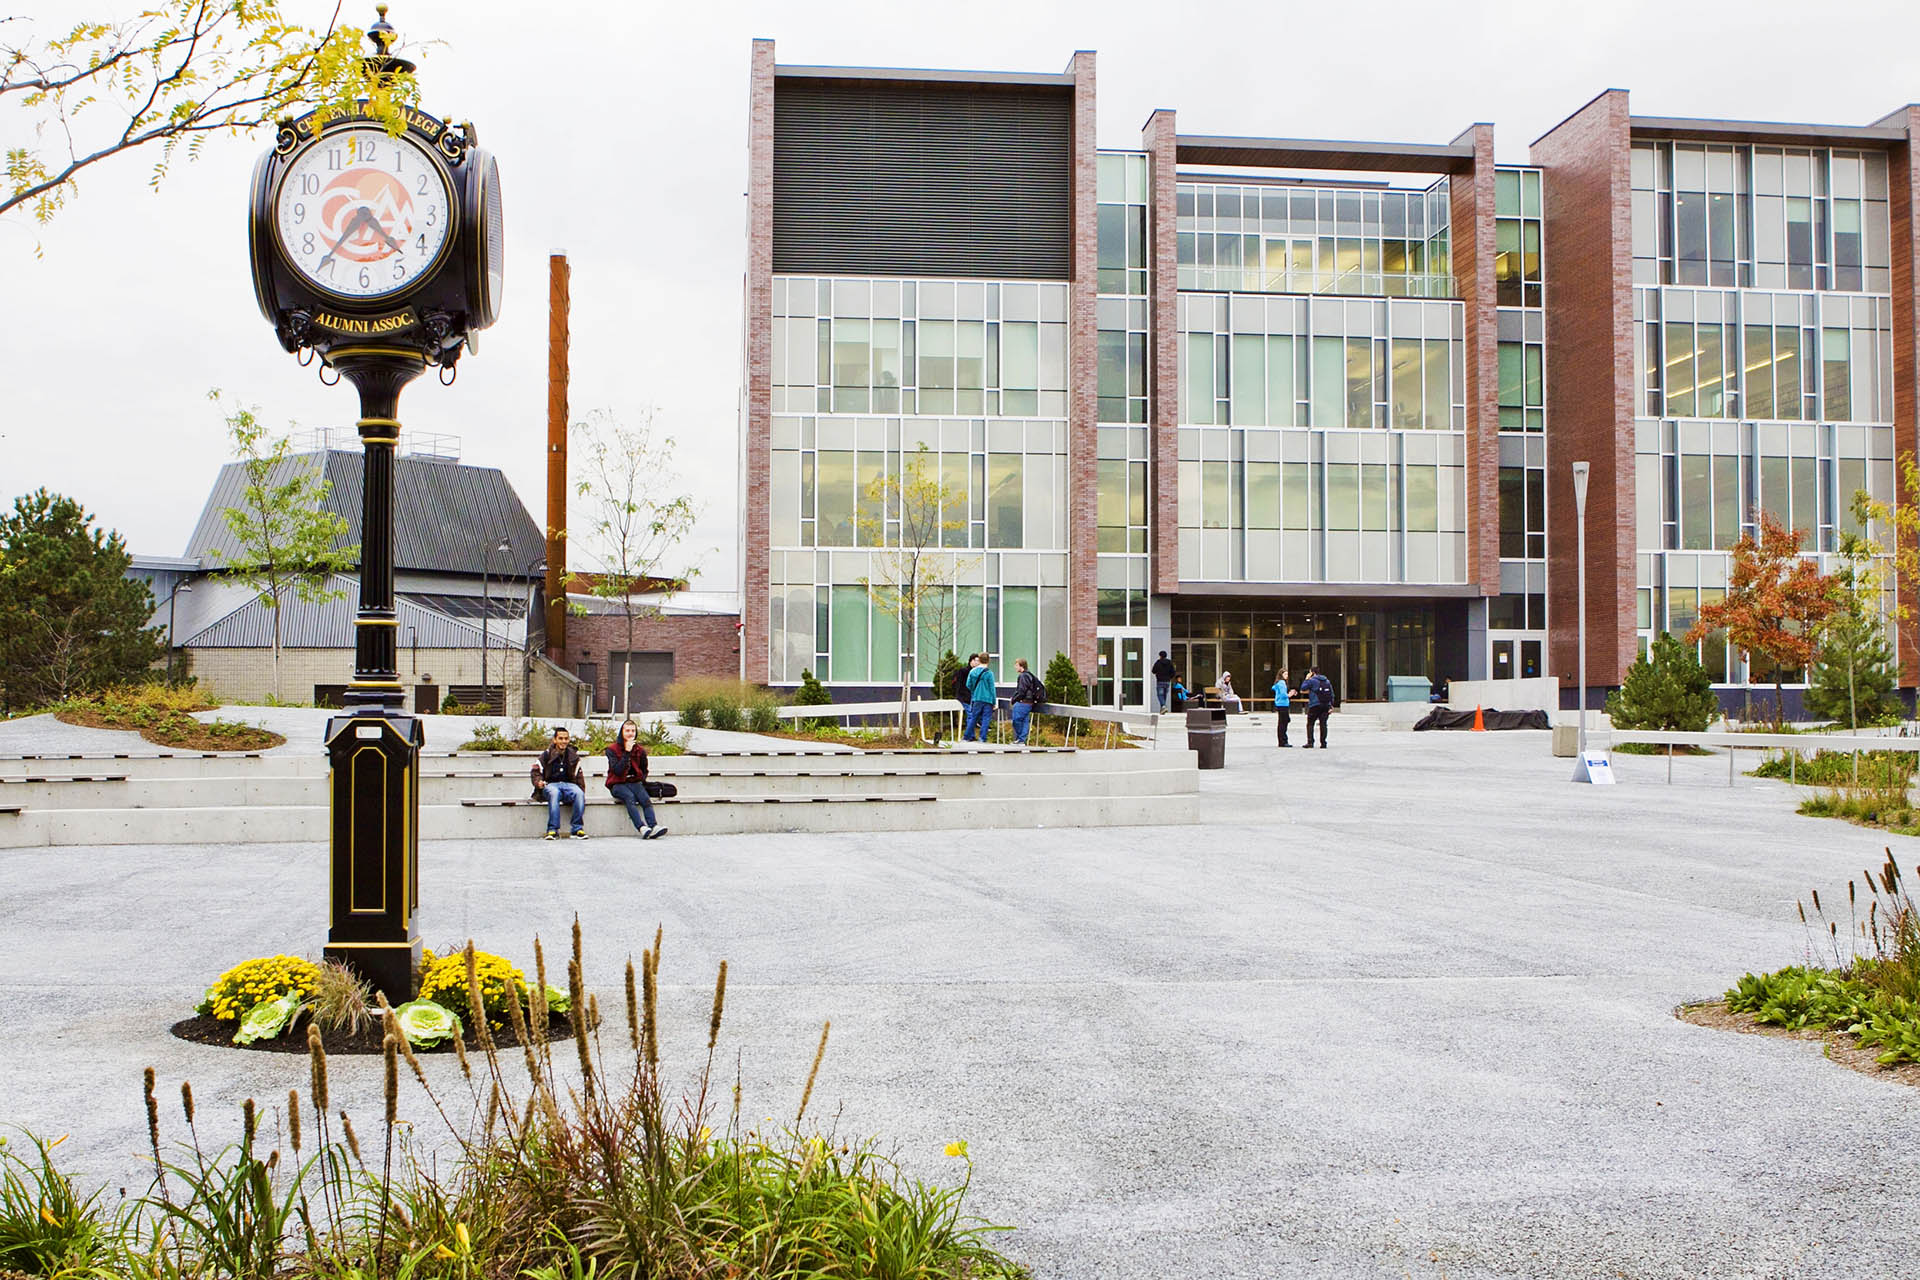 A clock with the CCAA logo sits in a courtyard at Centennial College